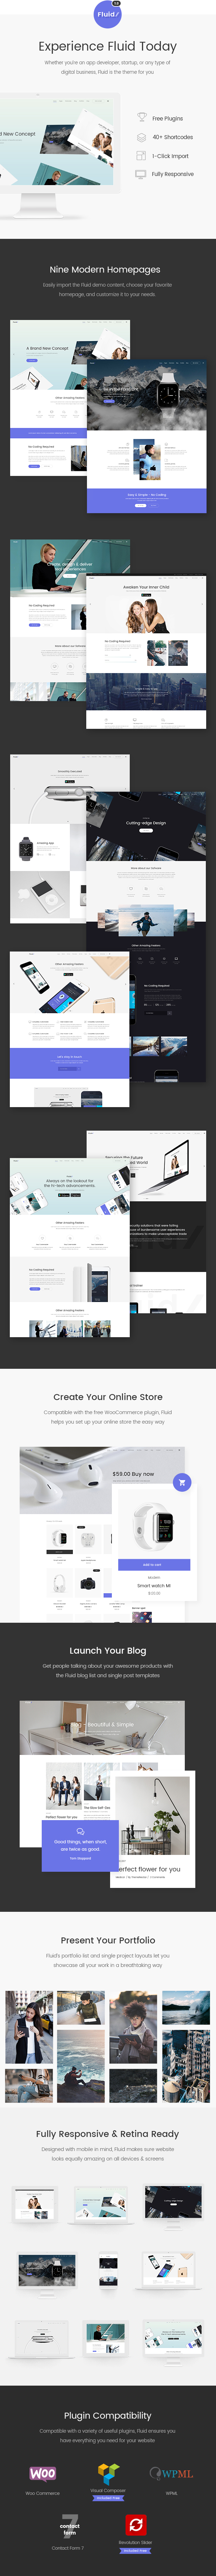 Fluid - Startup and App Landing Page Theme - 1